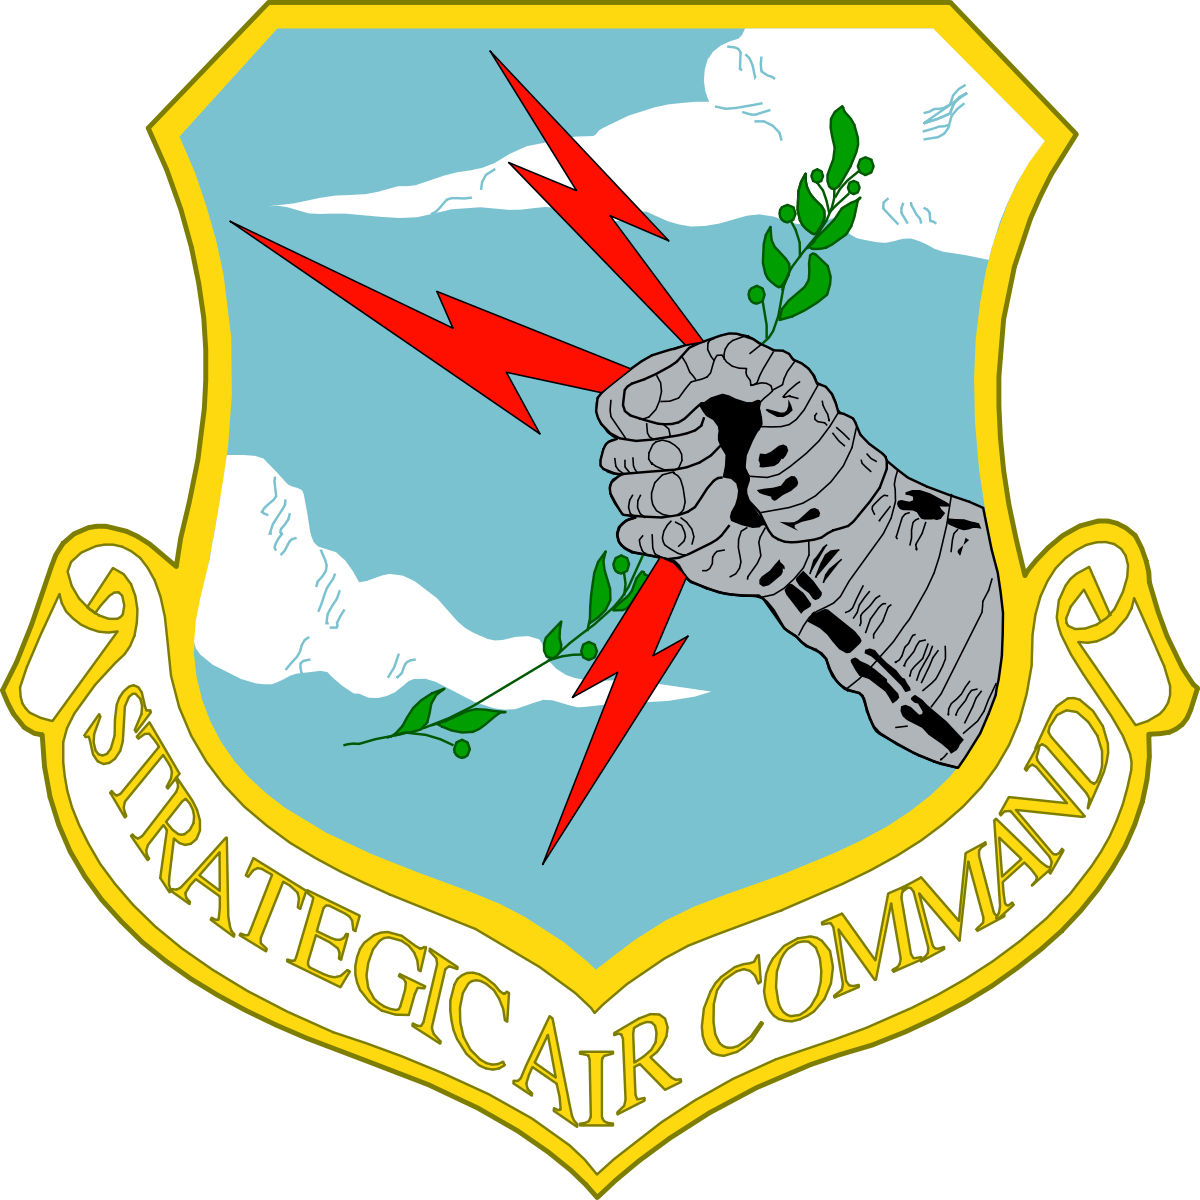 Air command wikipedia . Missions clipart strategic